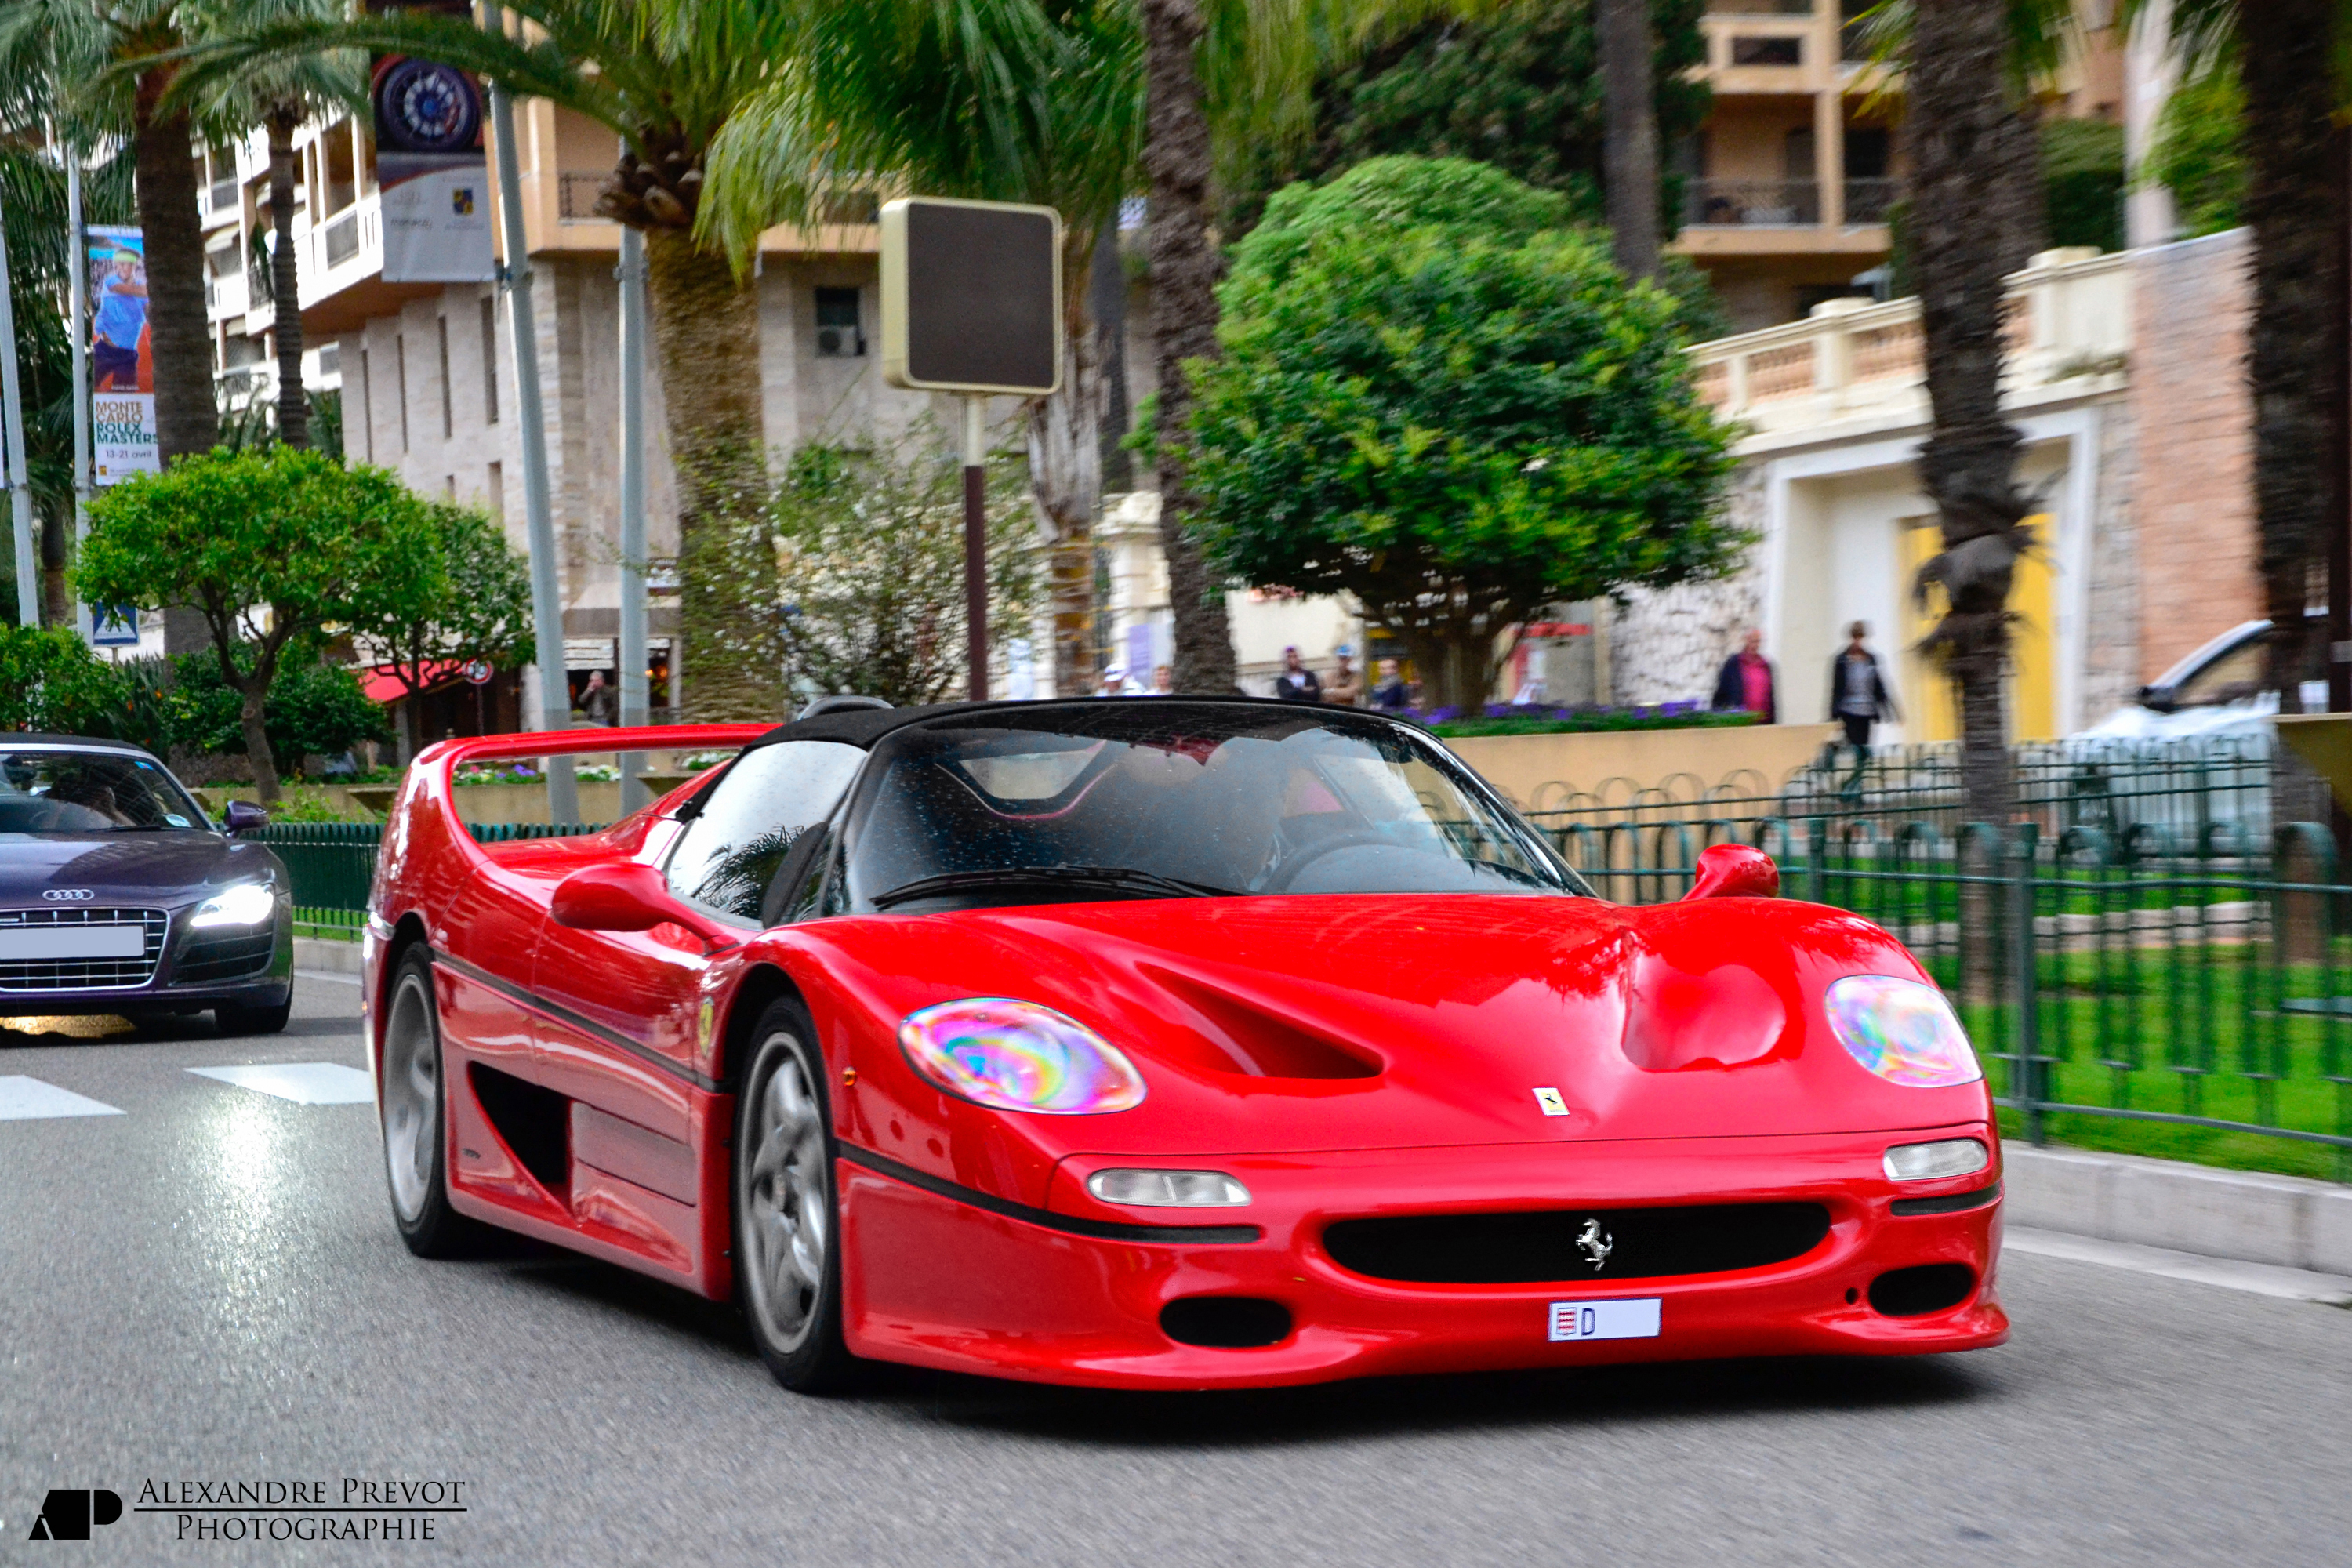 ferrari f50 wallpaper #4